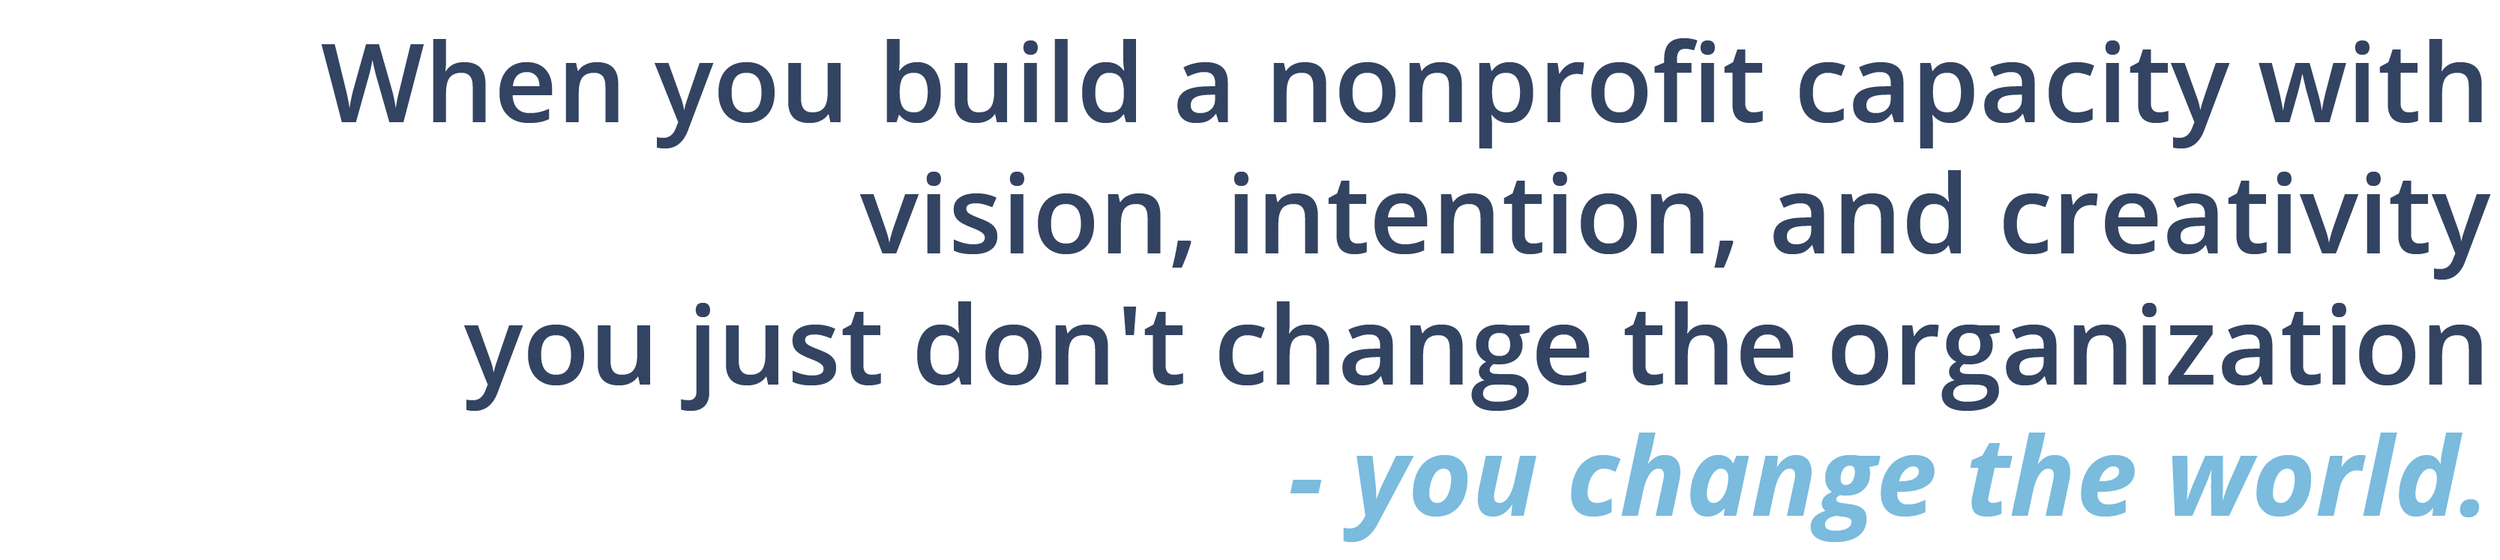 When you build a nonprofit capacity with vision, intention, and creativity, you just don't change the organization - you change the world.